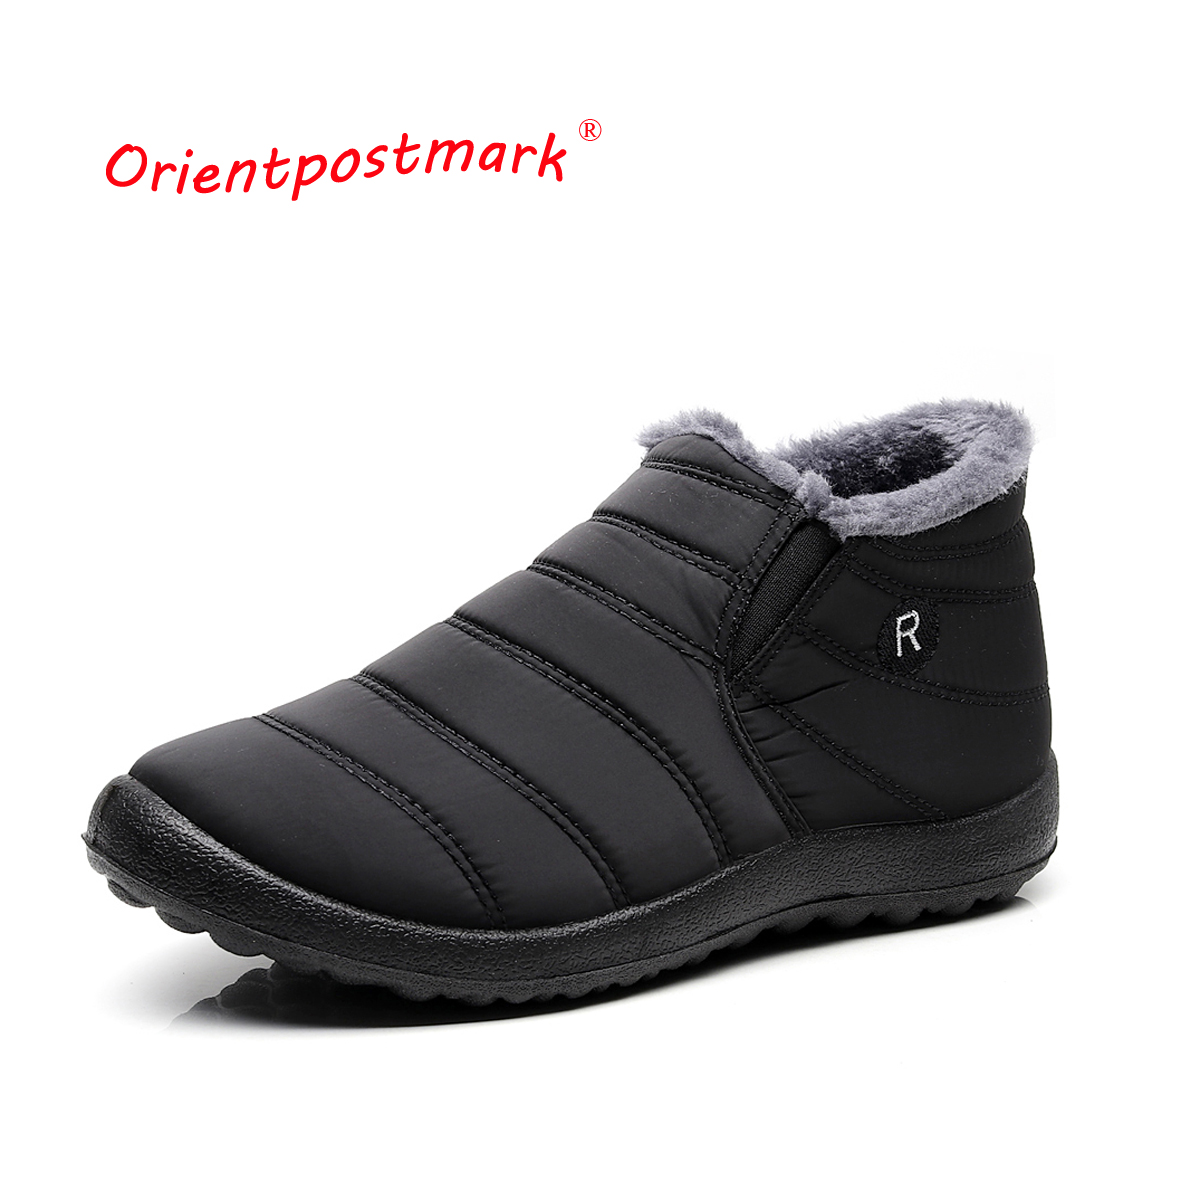 winter-boots-ankle-boots-unisex-couples-snow-boots-solid-color-men-plush-inside-anti-skid-bottom-ankle-boot-waterproof-ski-shoes